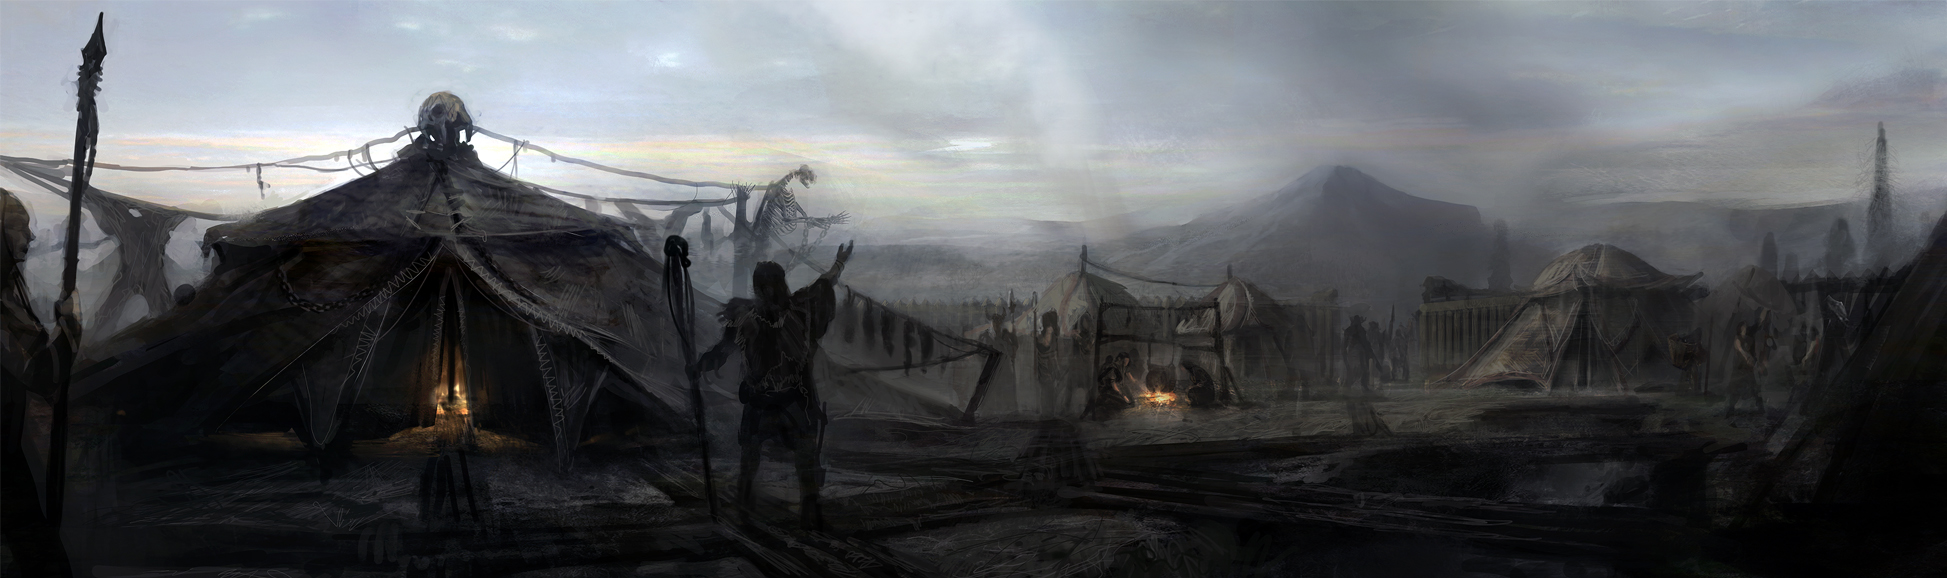 Barbariancamp conceptart big